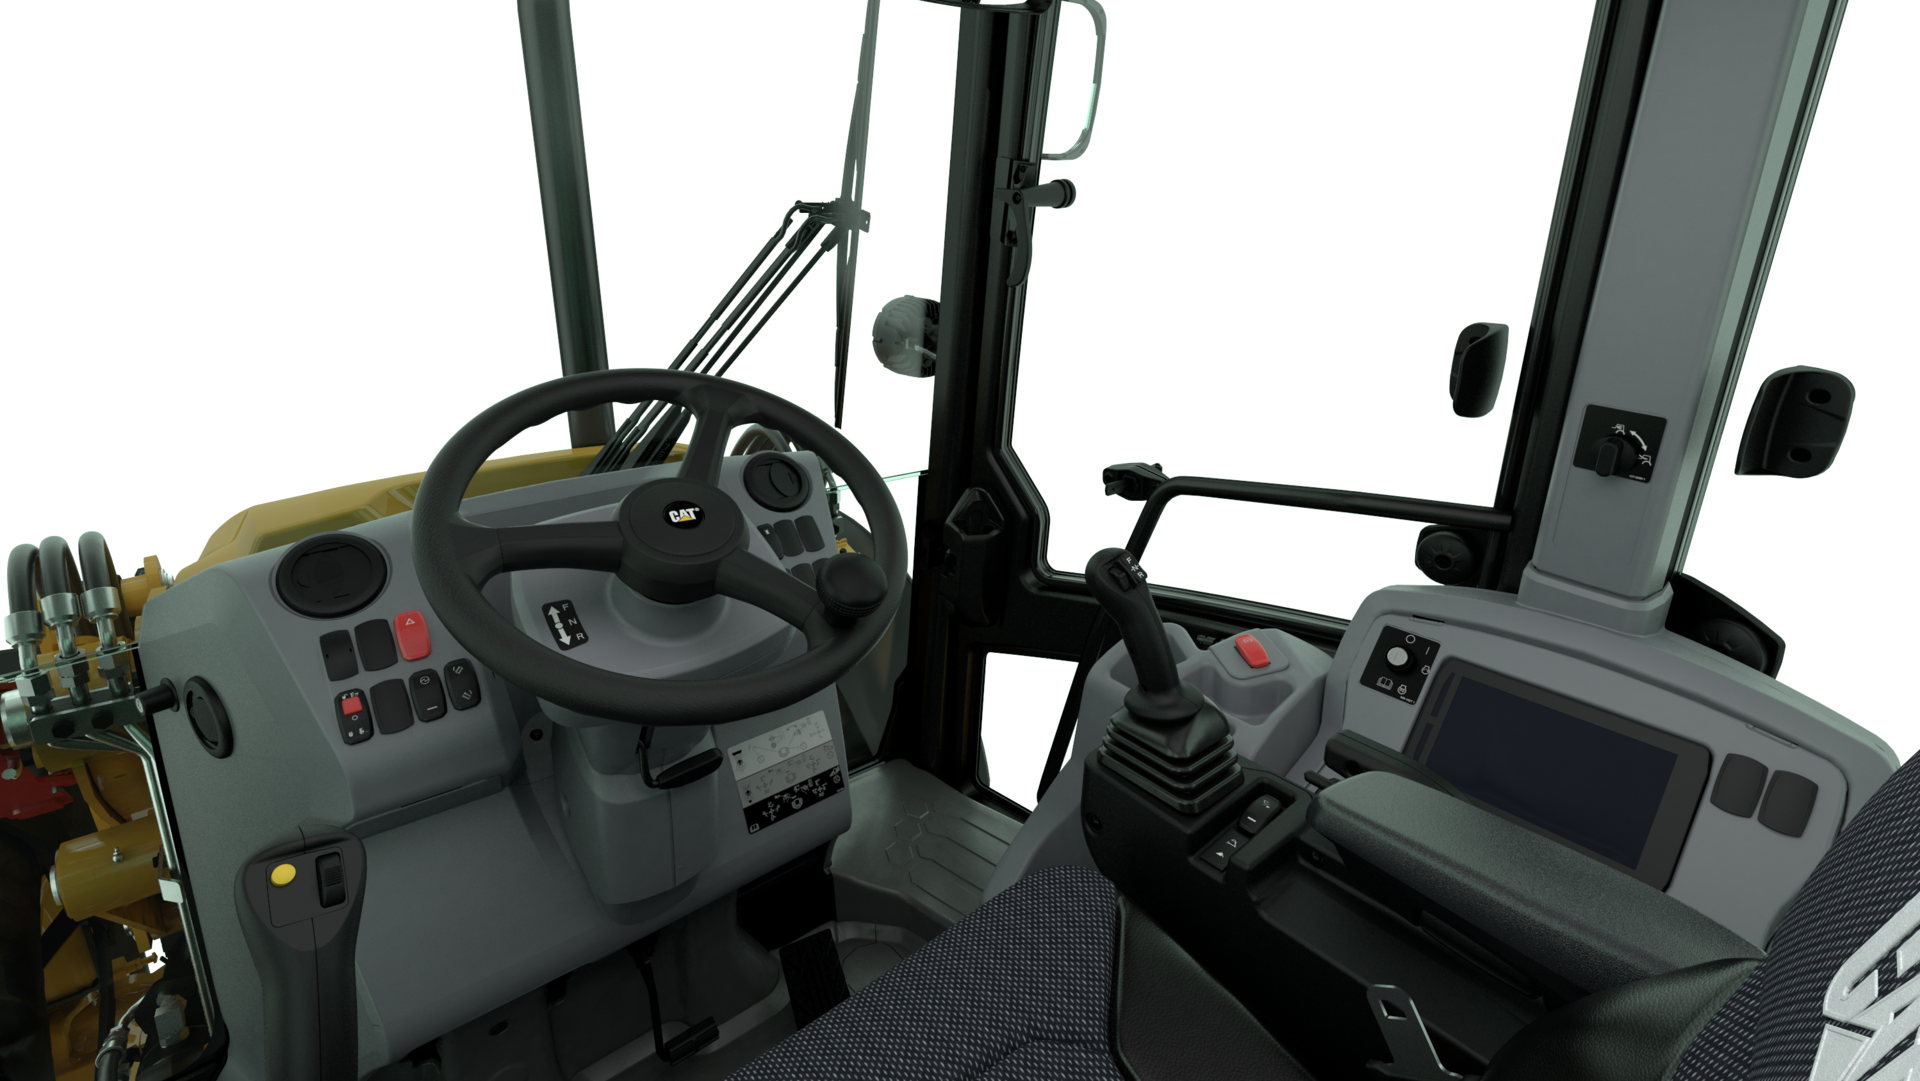 Cat 444 backhoe loader operator cabin